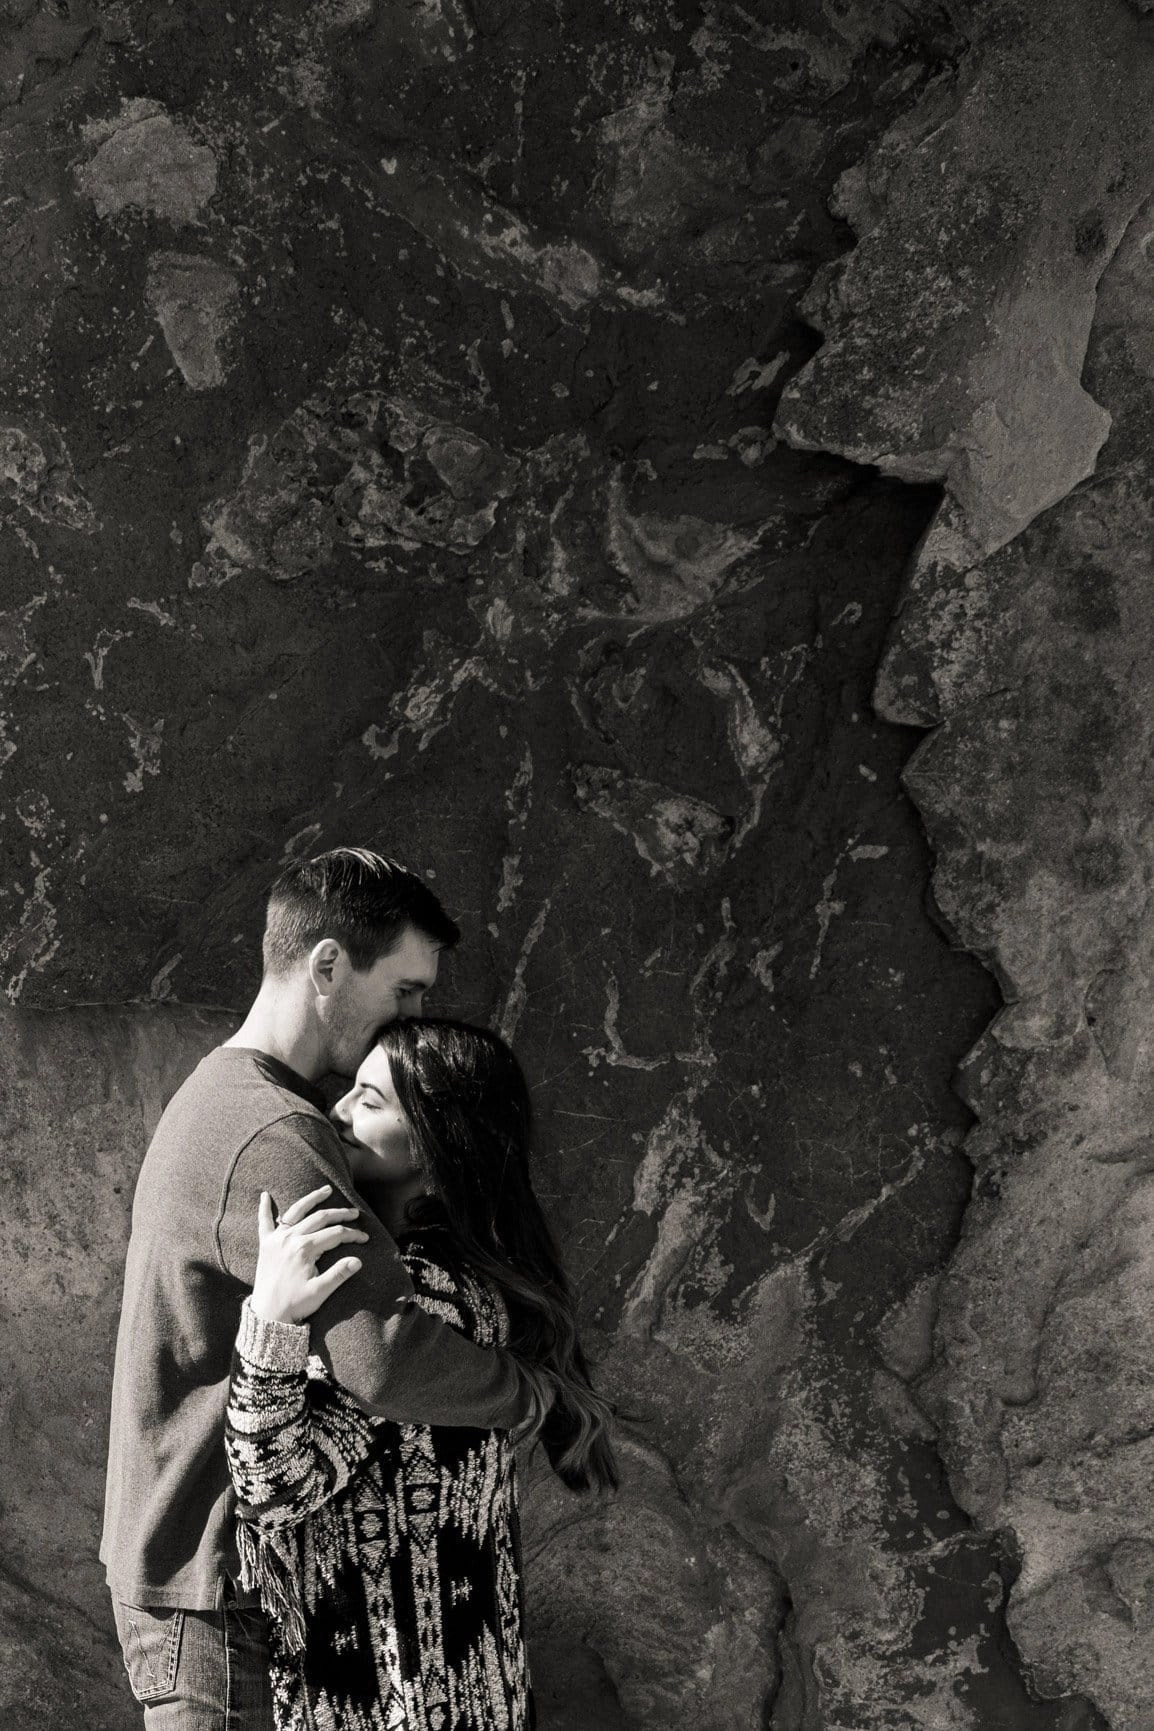 Beautiful people embrace at Garden of the Gods. An engagement session through this park left us in awe over the towering sandstone structures